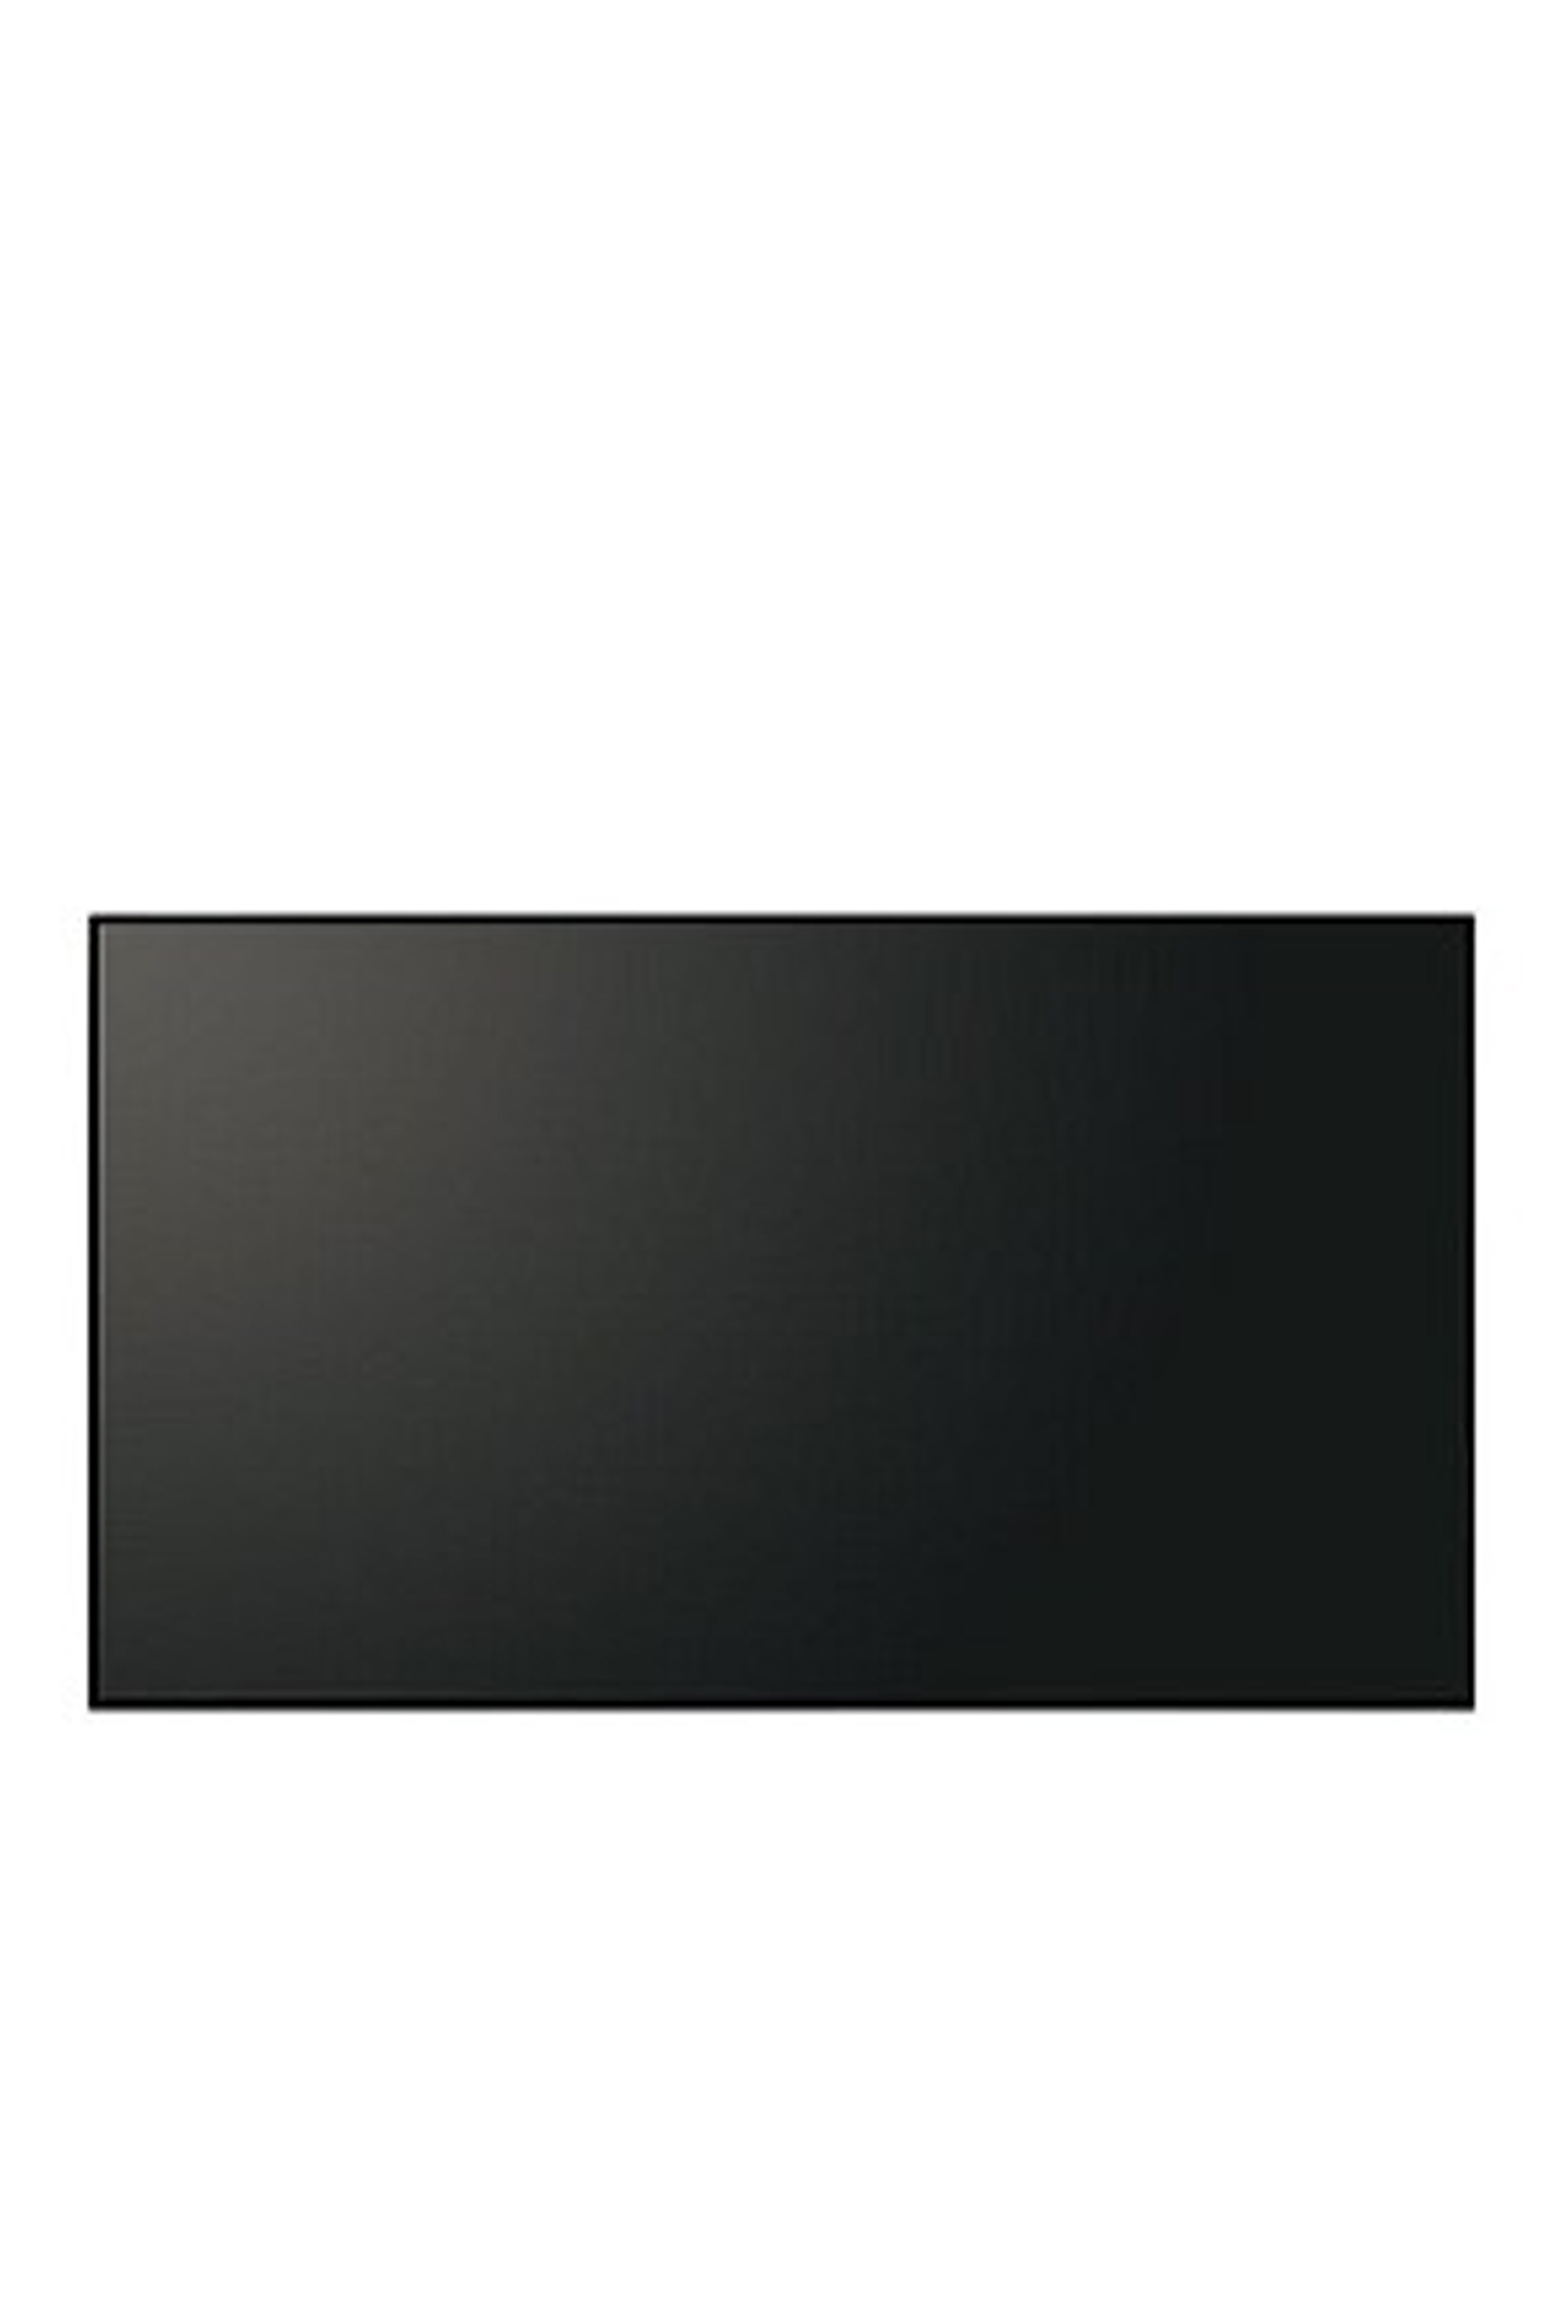 Sharp PN-H701 80-Inch Class (204.4cm Diagonal) TFT LCD Monitor